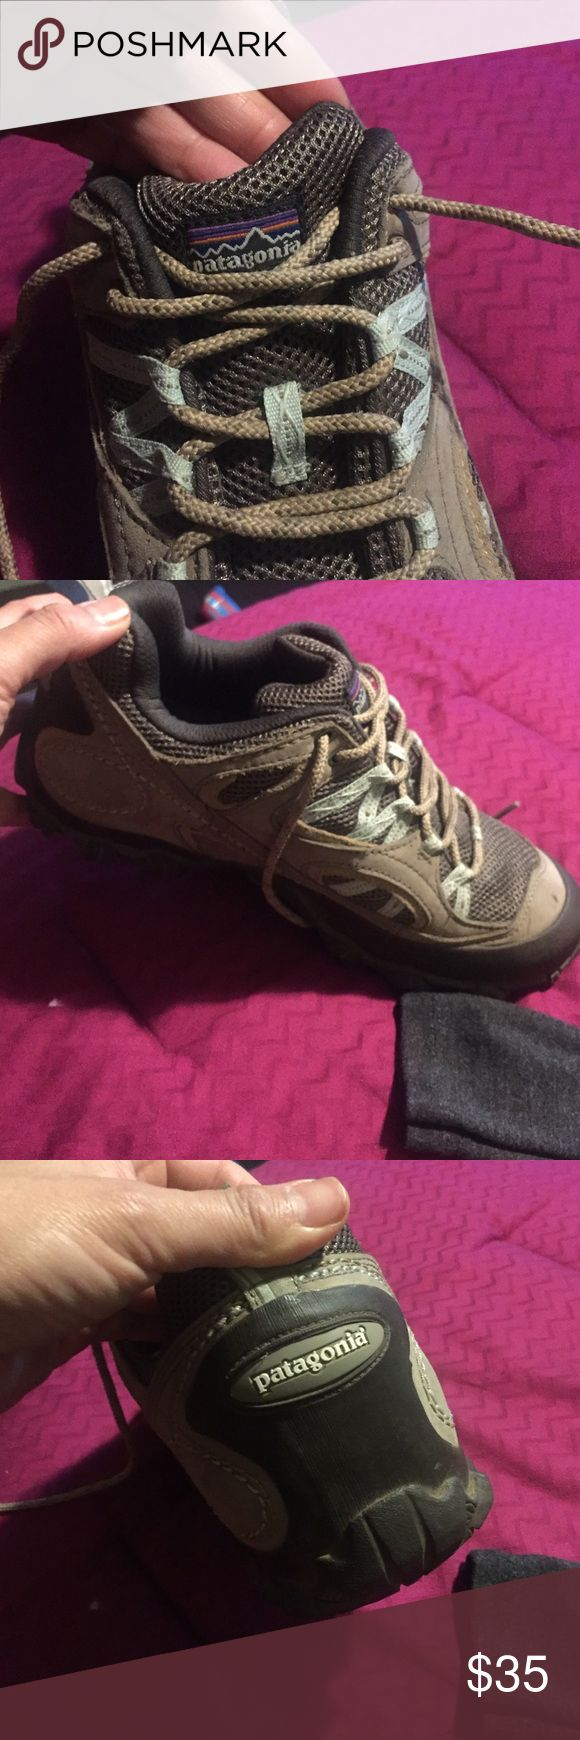 Hiking boots In good condition hiking shoes Patagonia Shoes Athletic Shoes